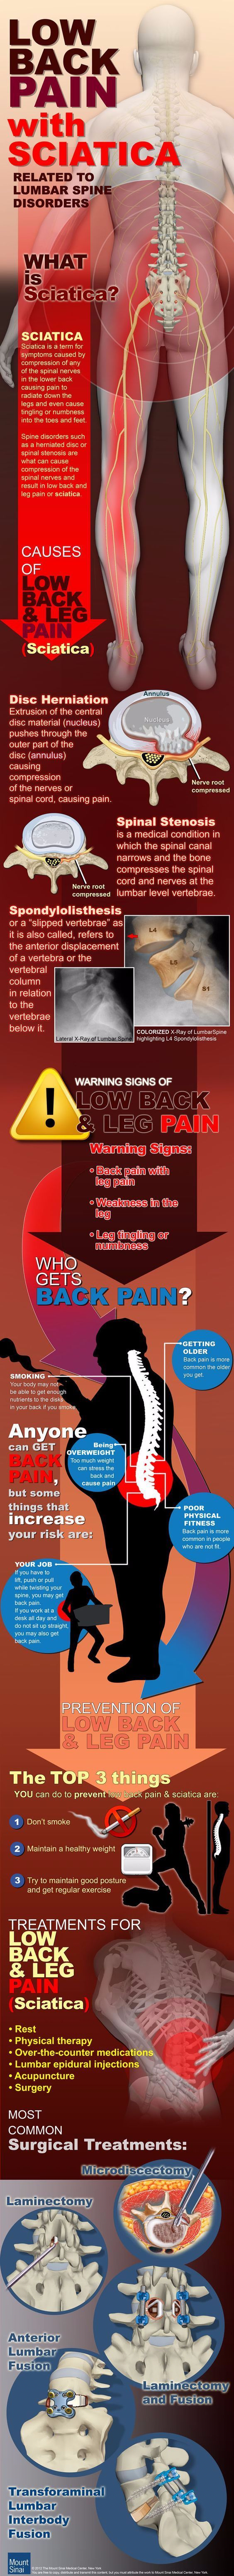 Learn how to treat back pain at home. Don't spend money on surgery until you read this! #backpain